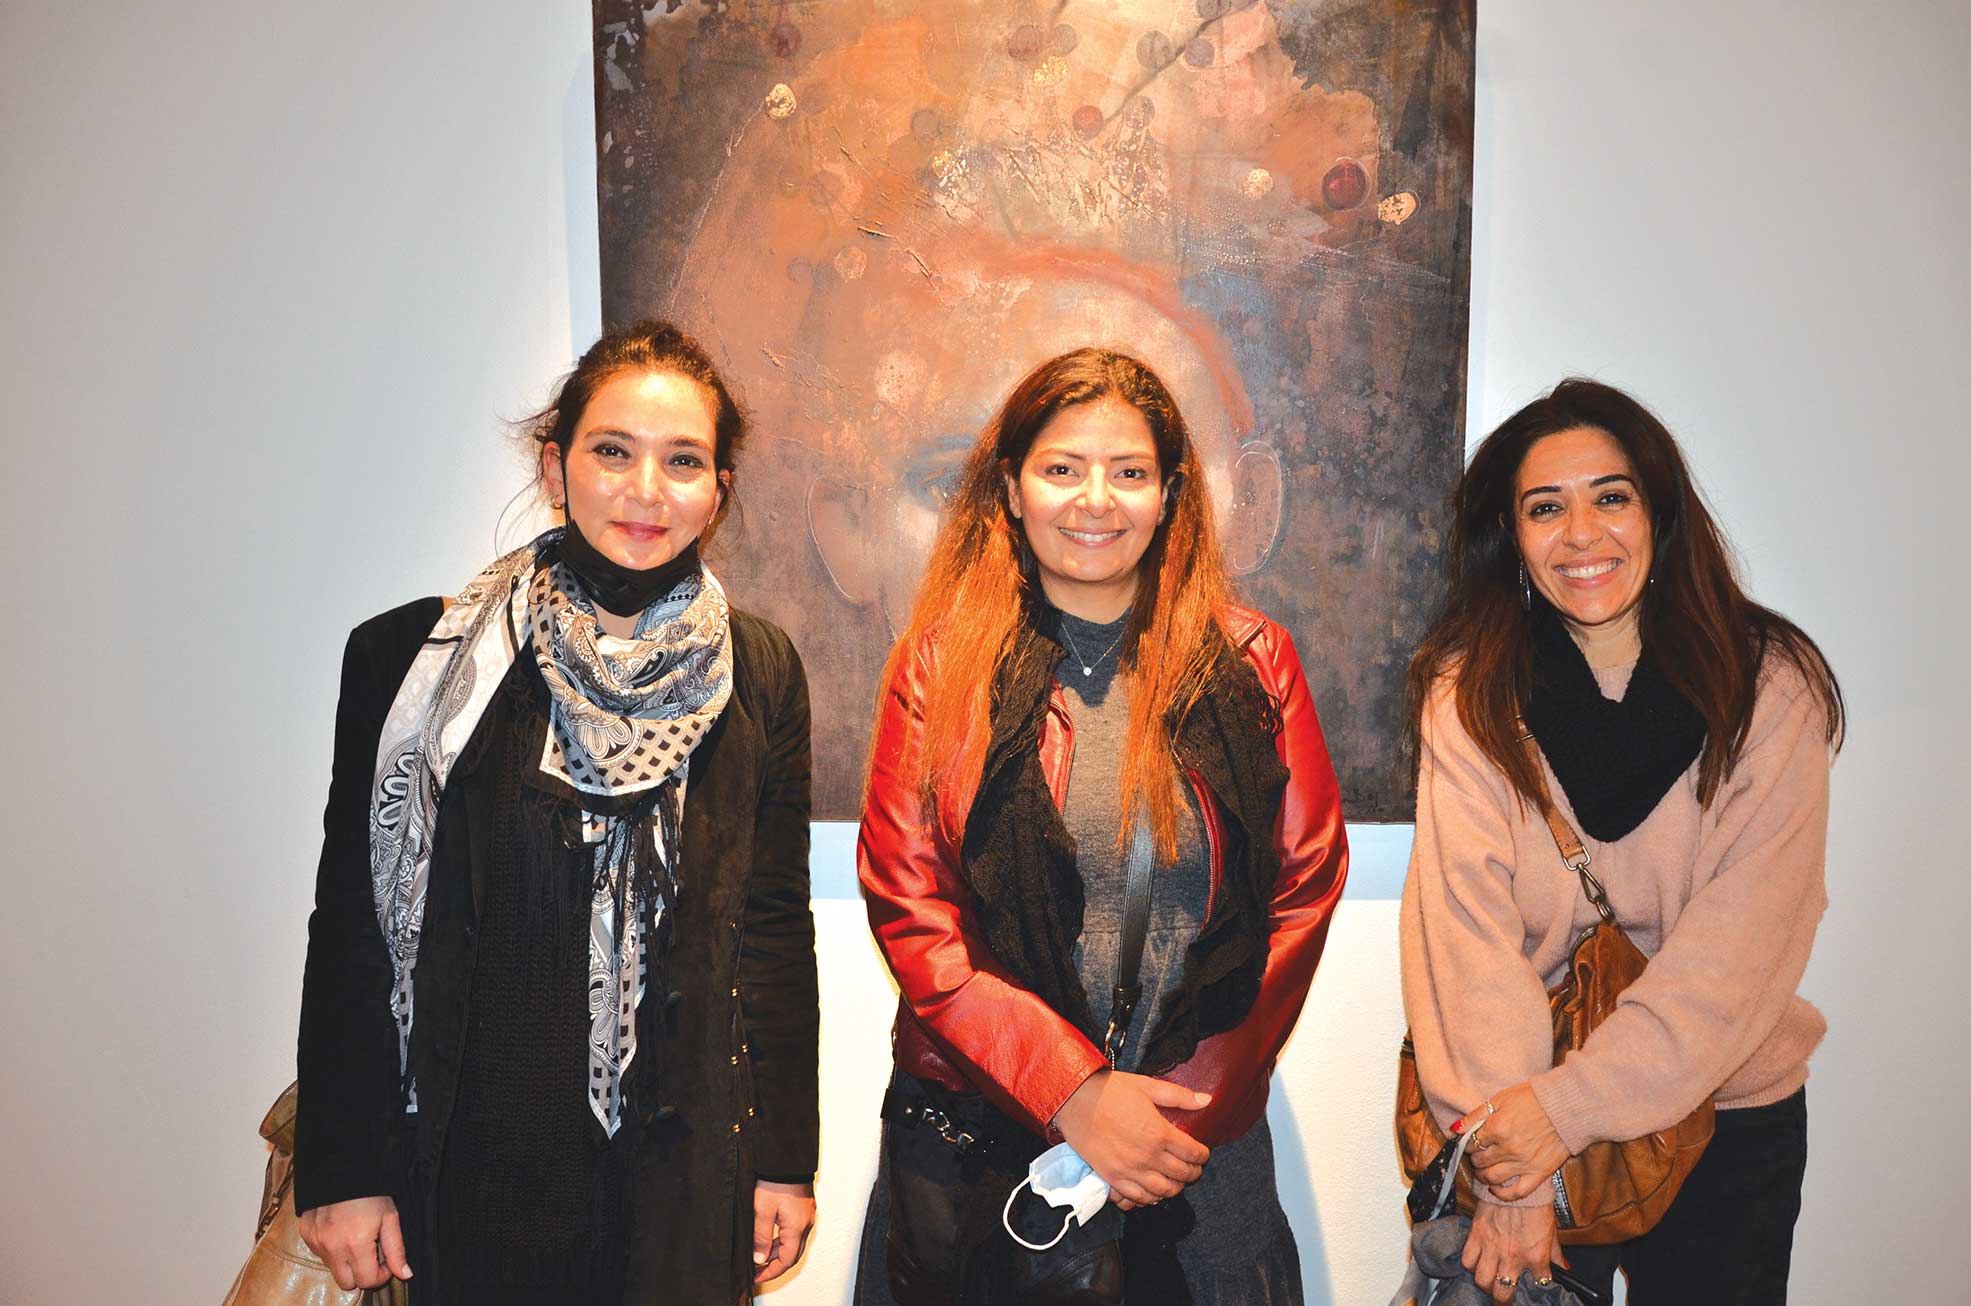 Ms. Ingy Zahran, Ms. Nevine Mansour & Ms. Marwa Magdy